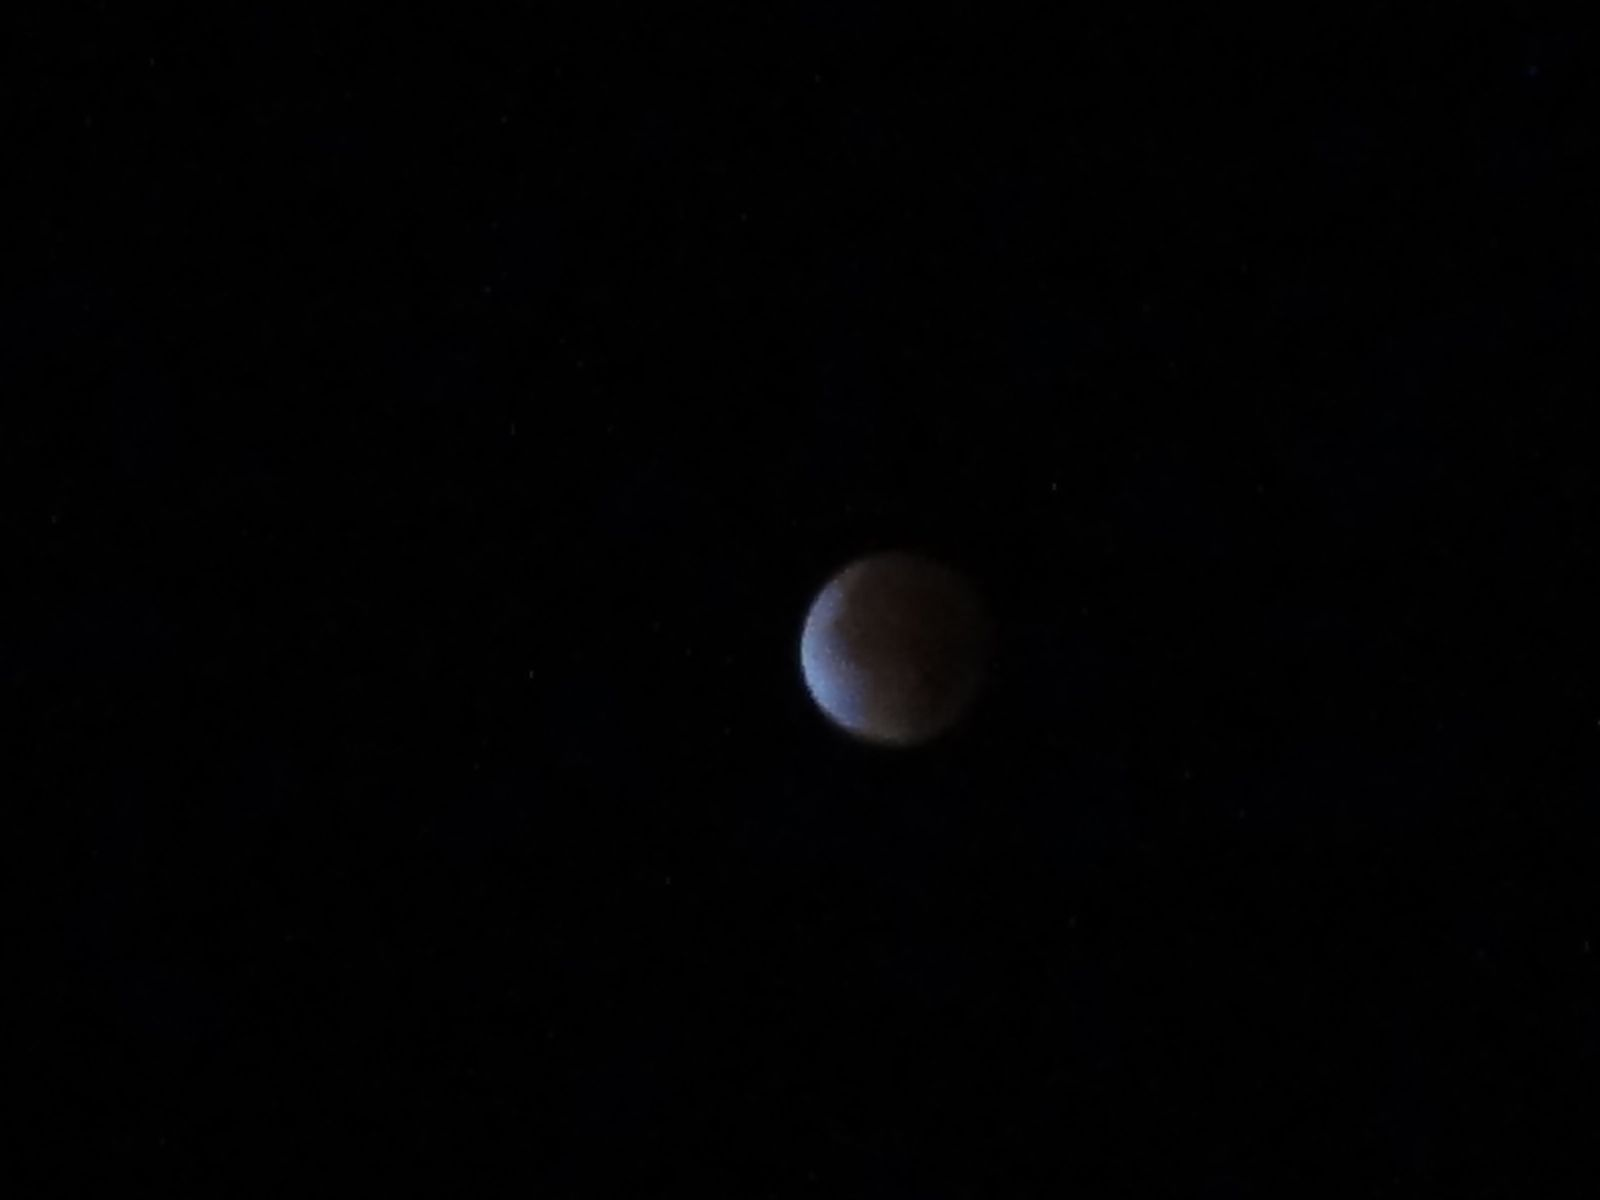 lunar_eclipse_158.jpg